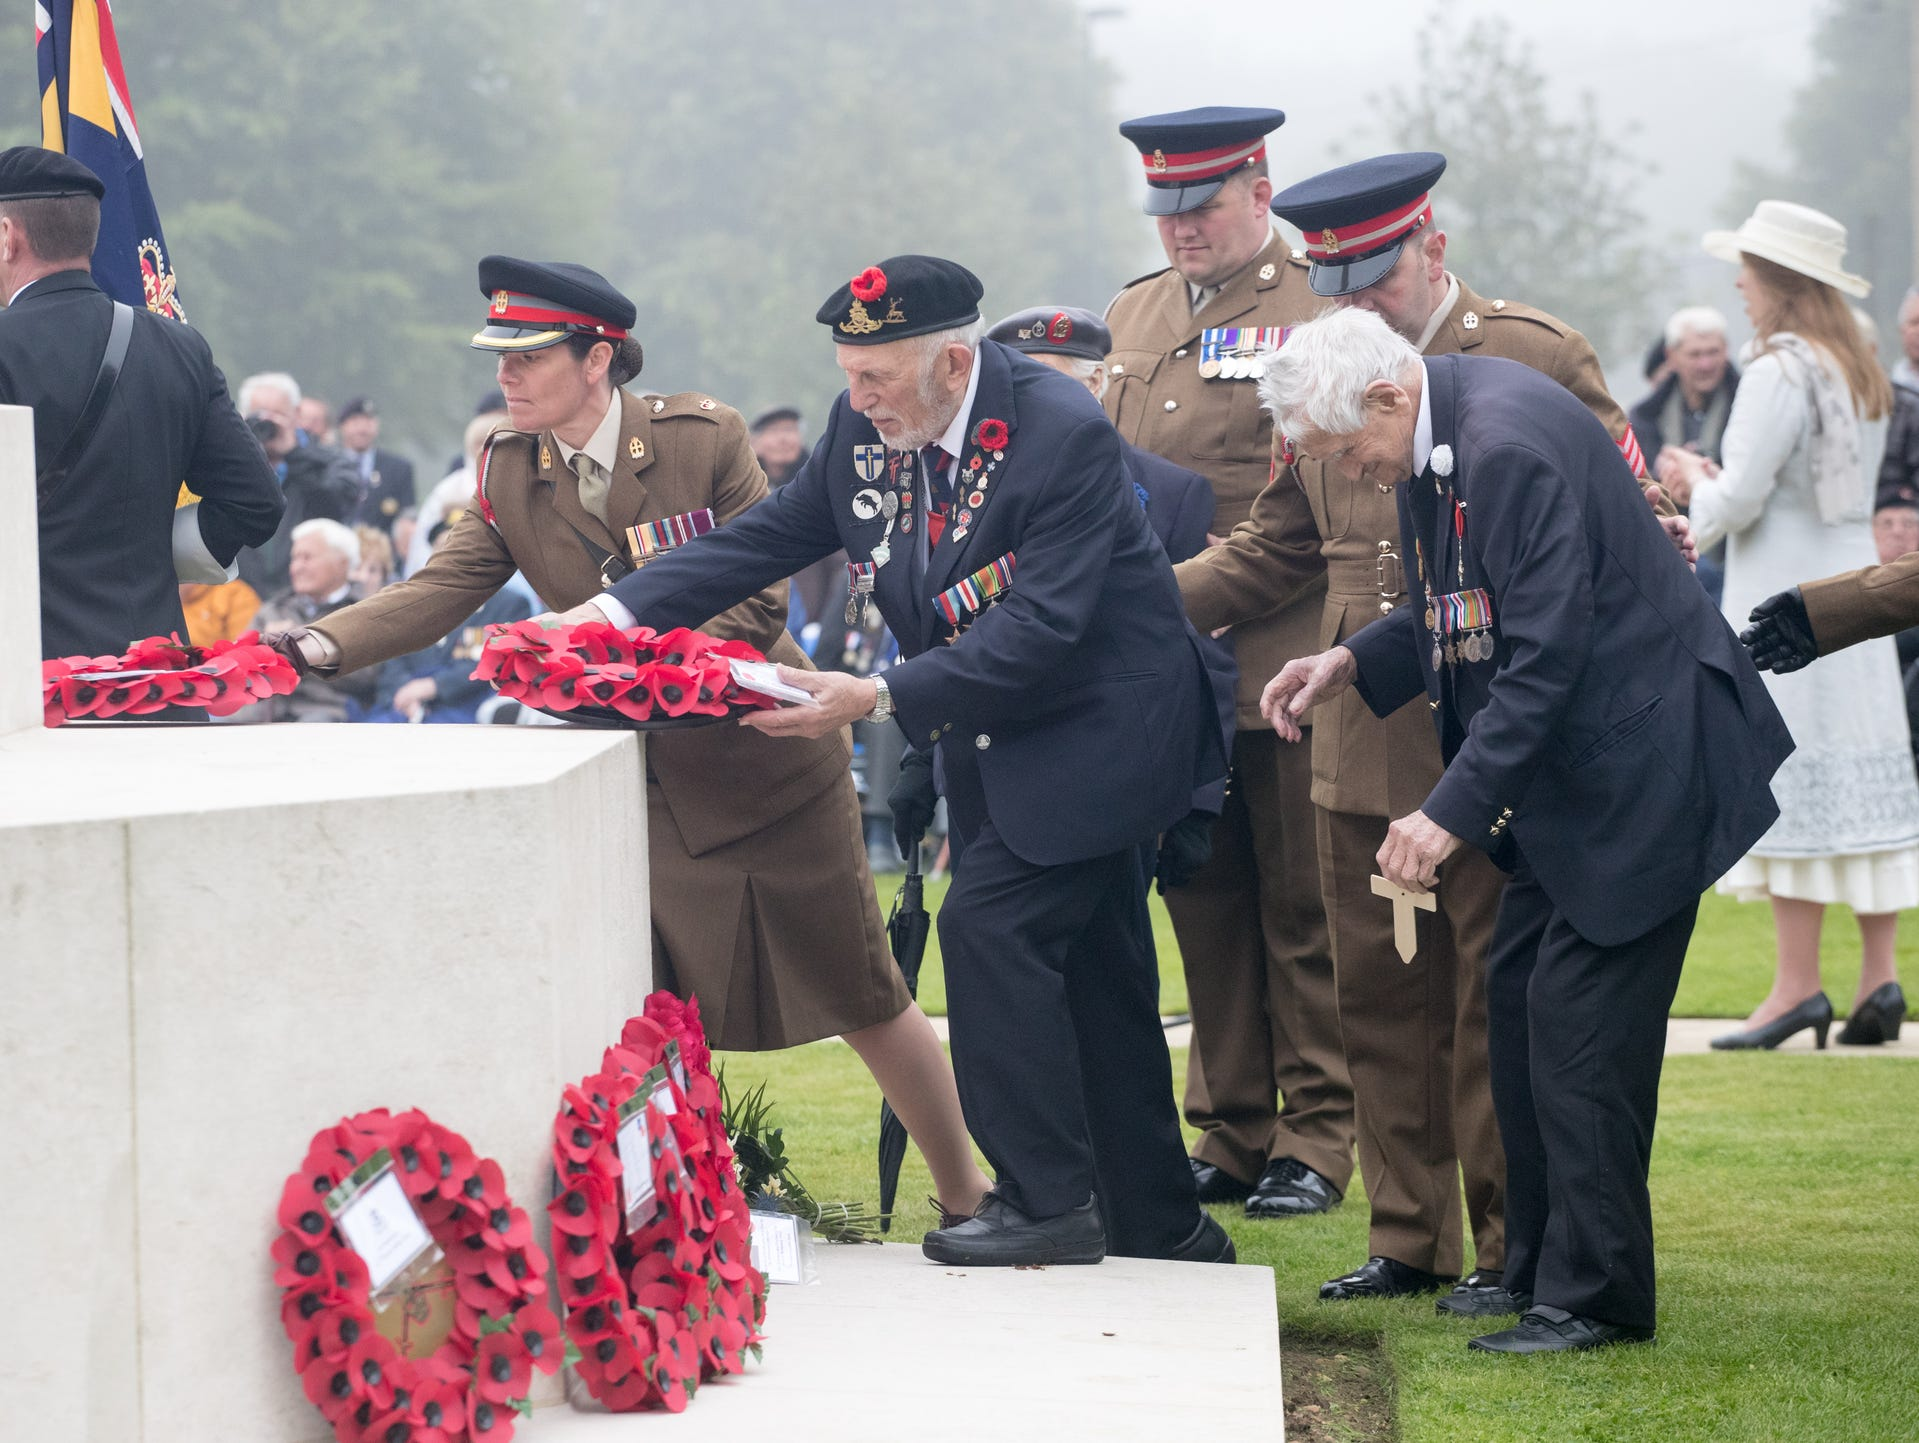 Normandy veterans lay wreaths as they attend an official